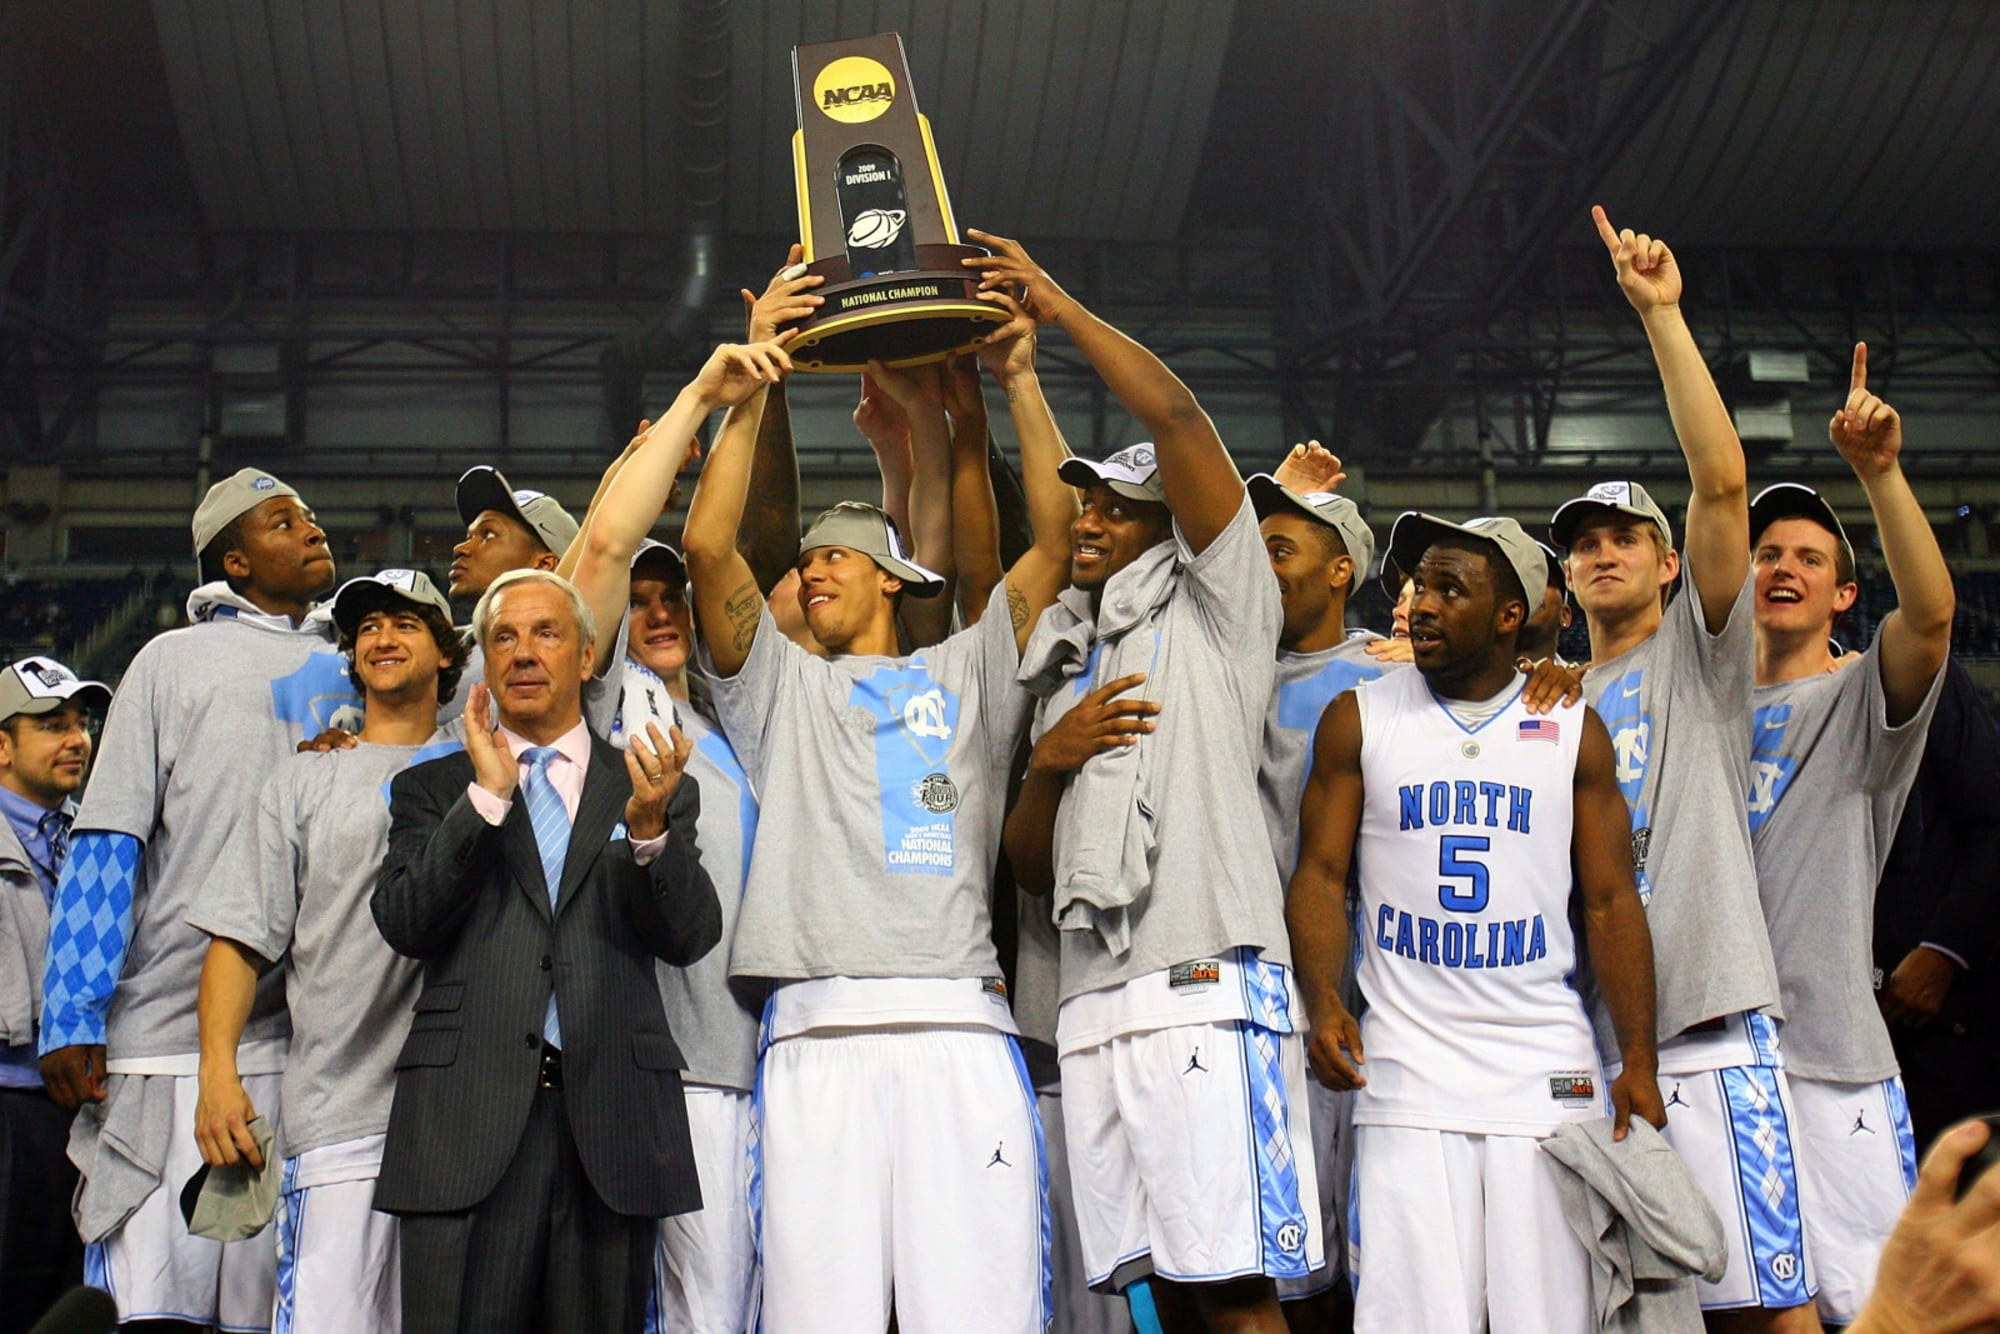 UNC athletics in good hands with proven head coaches